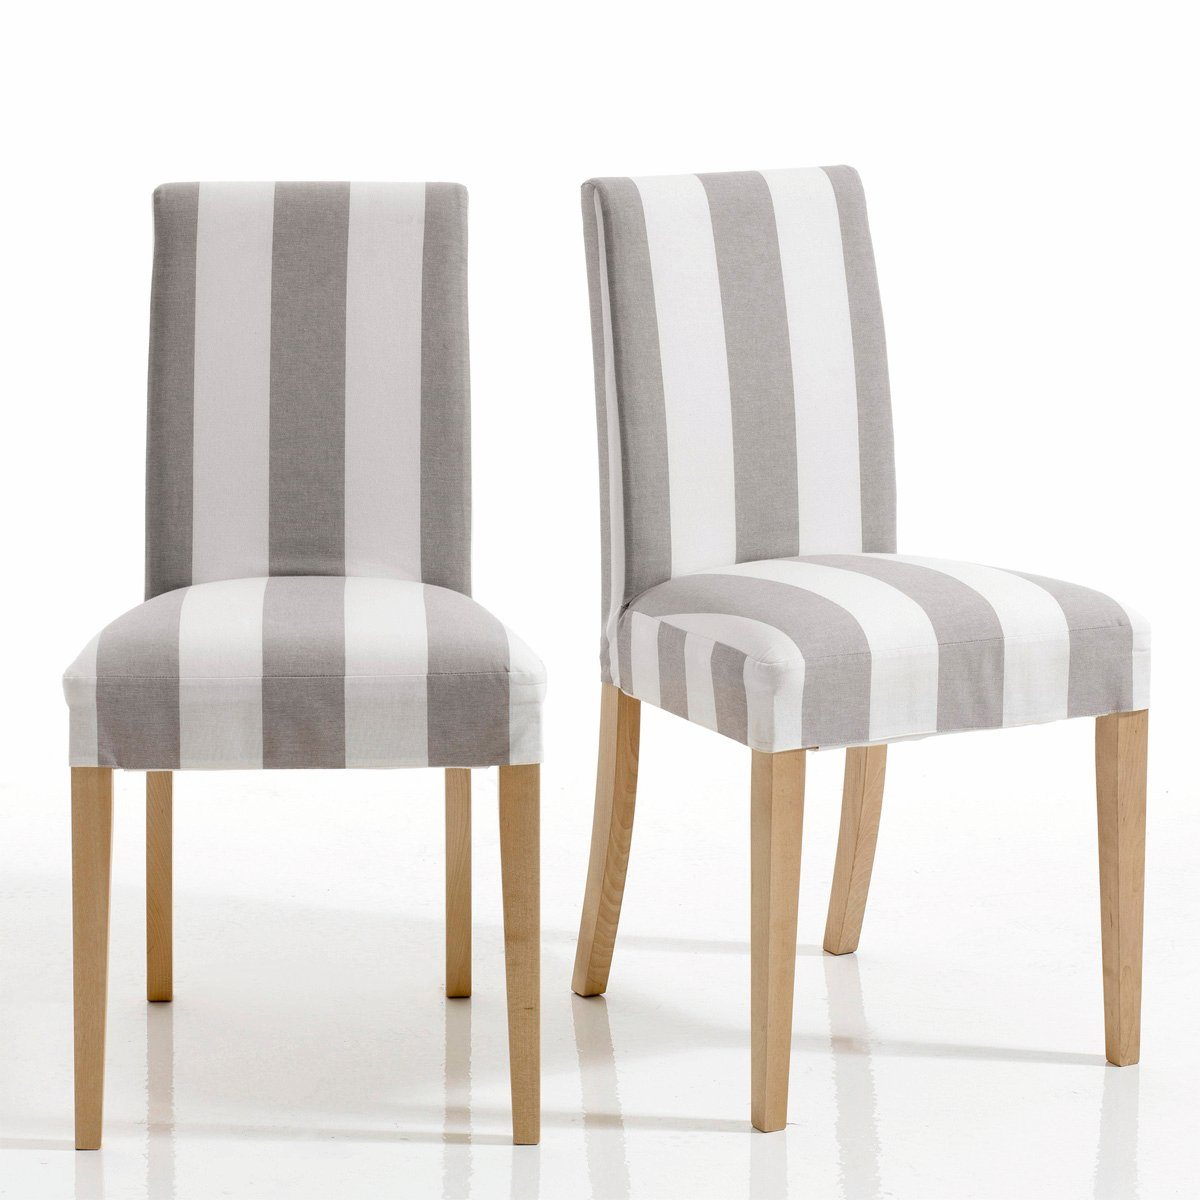 Chaise d houssable inqaluit lot de 2 chaises la for Housse de chaise la redoute